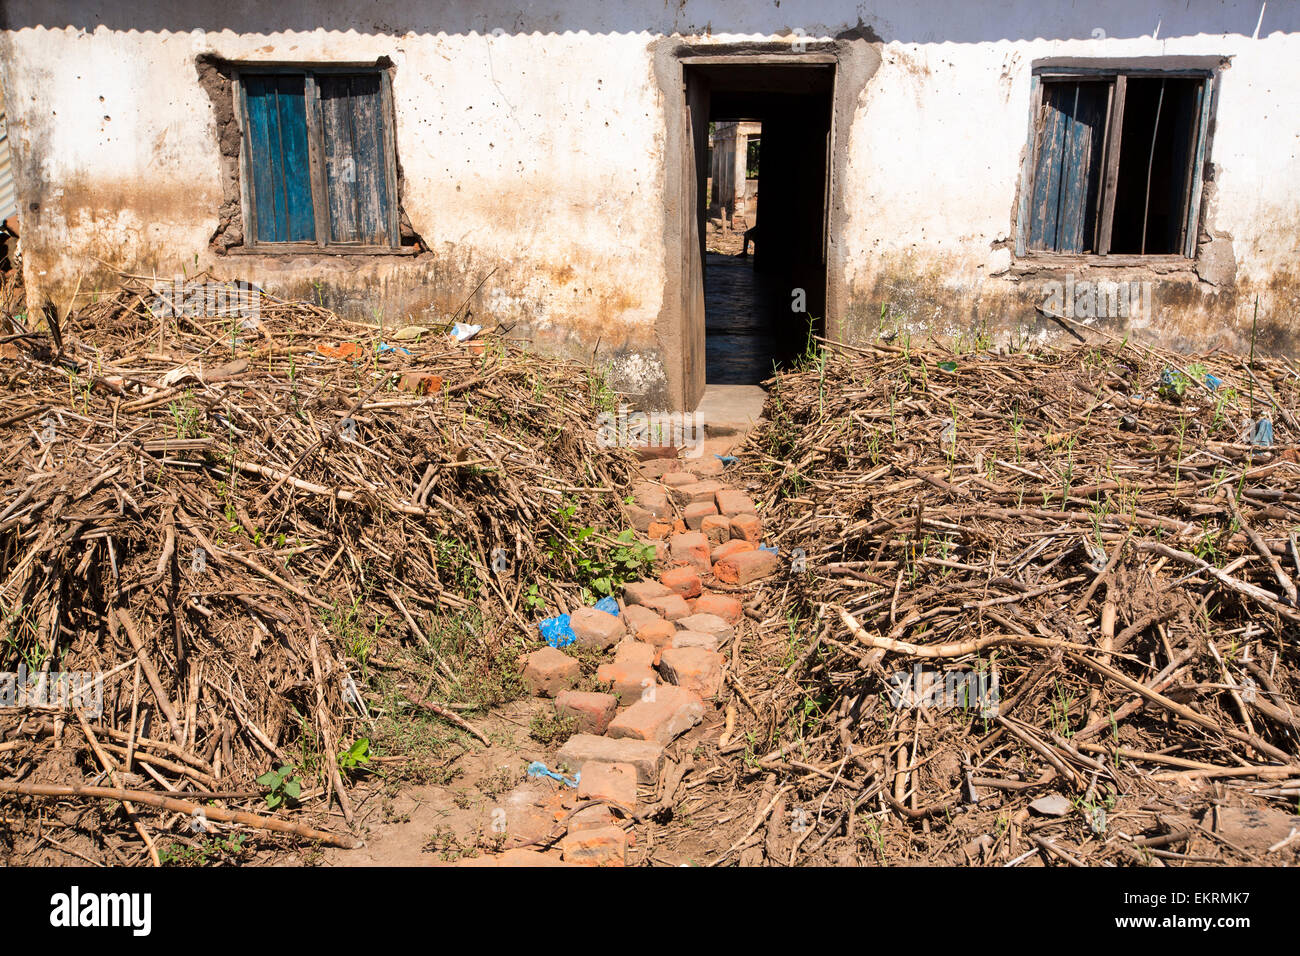 January 2015 saw a three day period of excessive rain which brought unprecedented floods to the small poor African - Stock Image